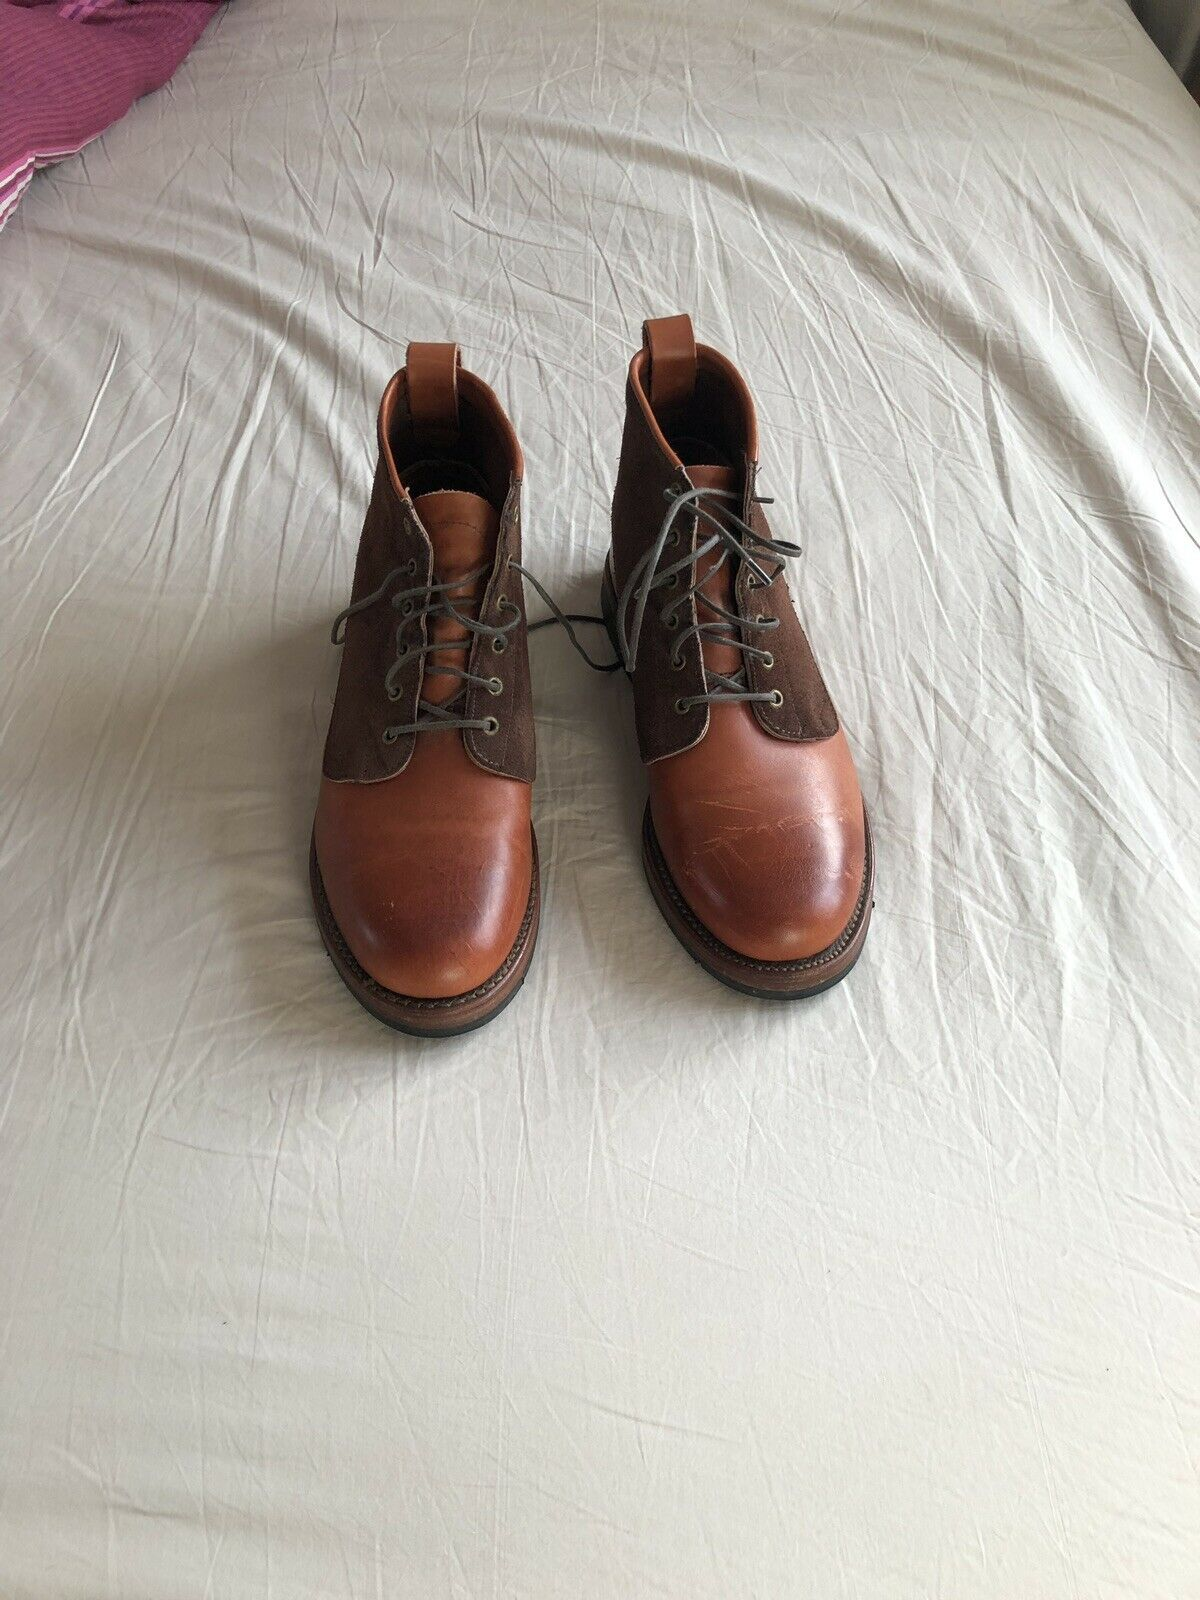 Top Of The Range Timberland Boot Company Boots size USA10 (UK9)